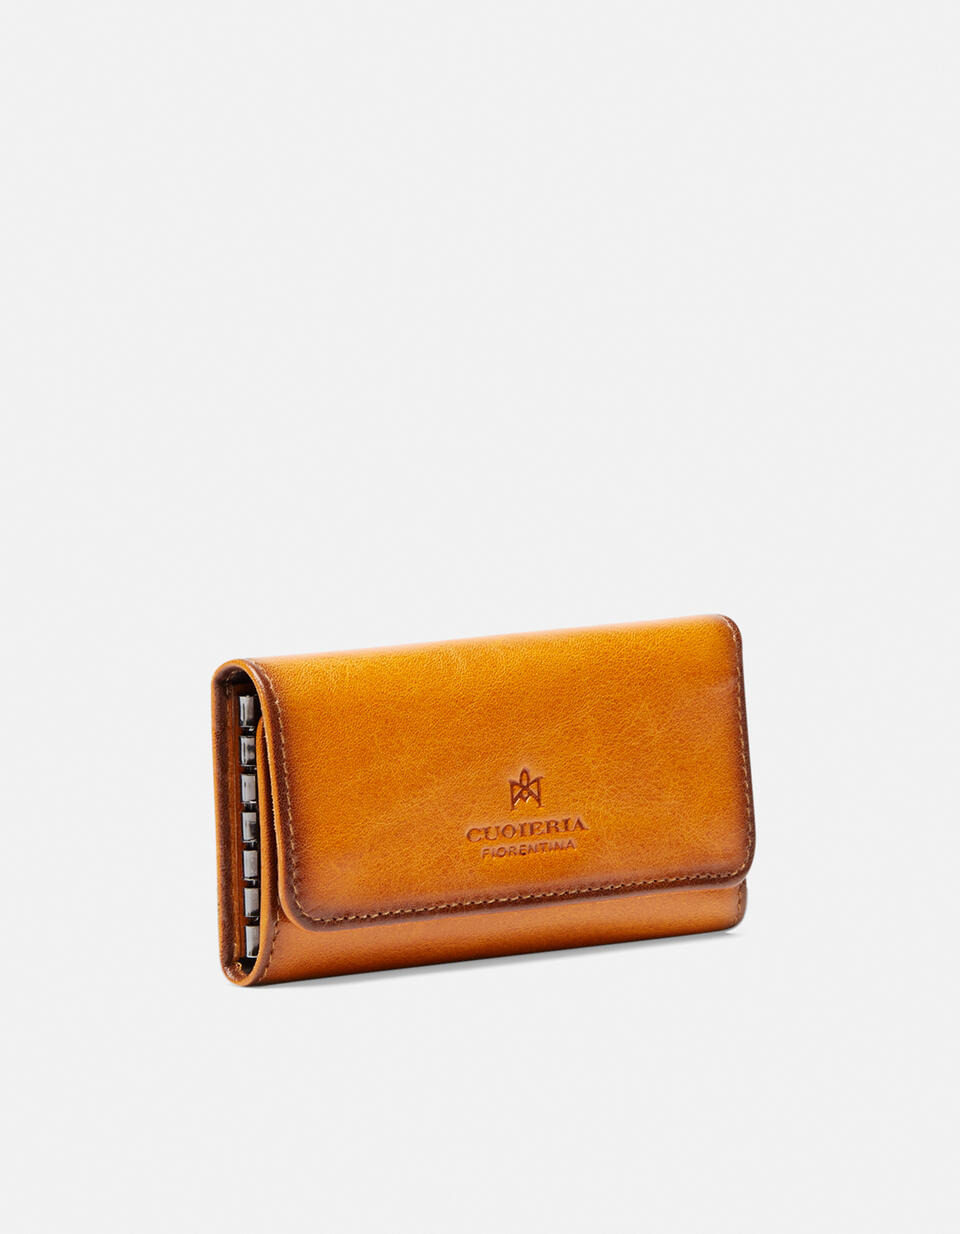 Warm and leather book keyring in leather GIALLO Cuoieria Fiorentina